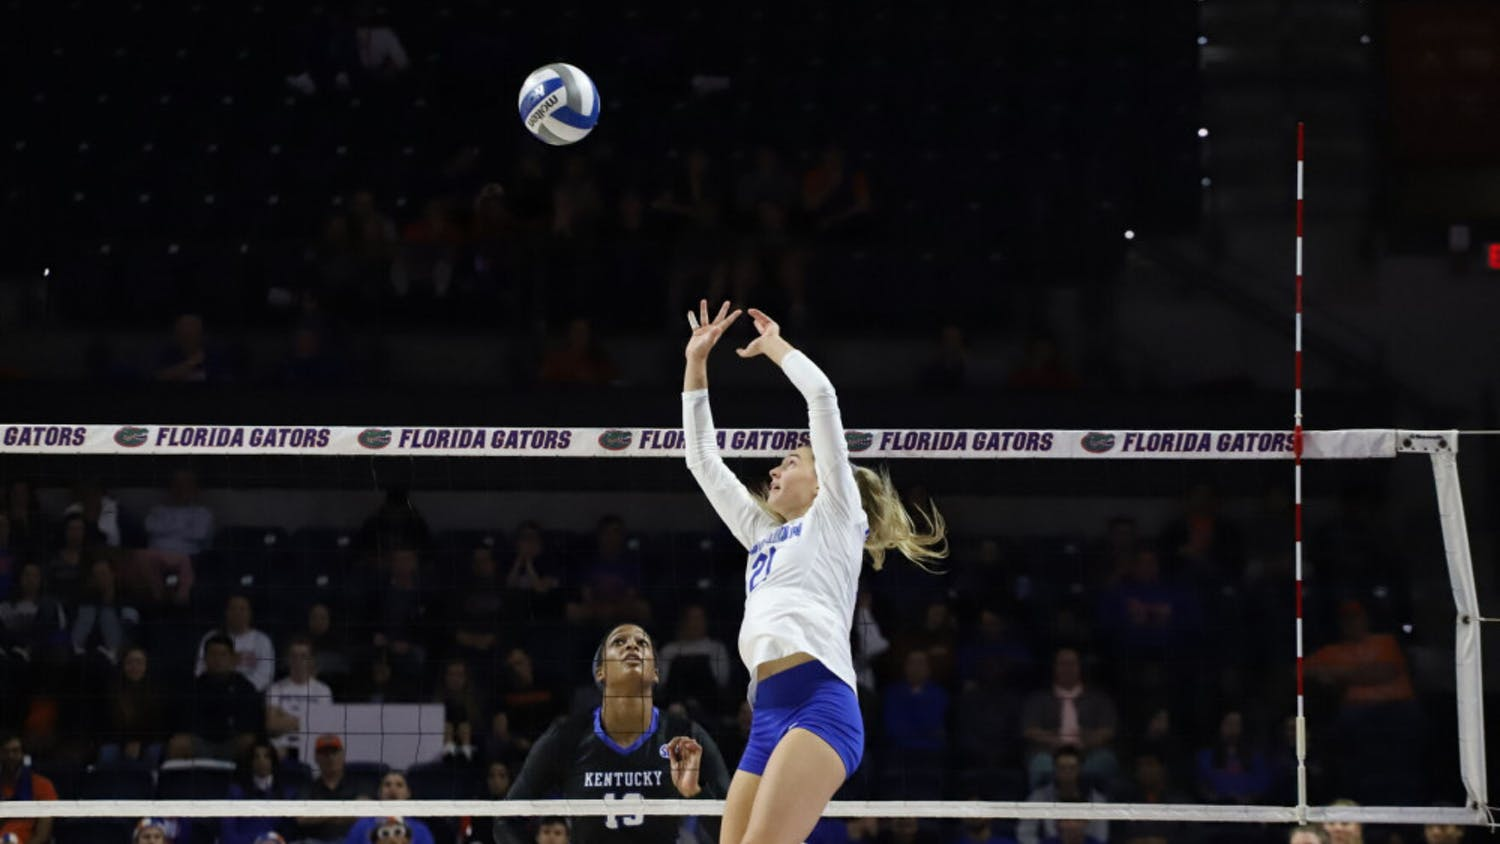 Marlie Monserez sets for the Gators at a 2019 home match versus Kentucky. Monserez totaled 61 assists during Saturday's double-header as Florida began 2021 3-0.